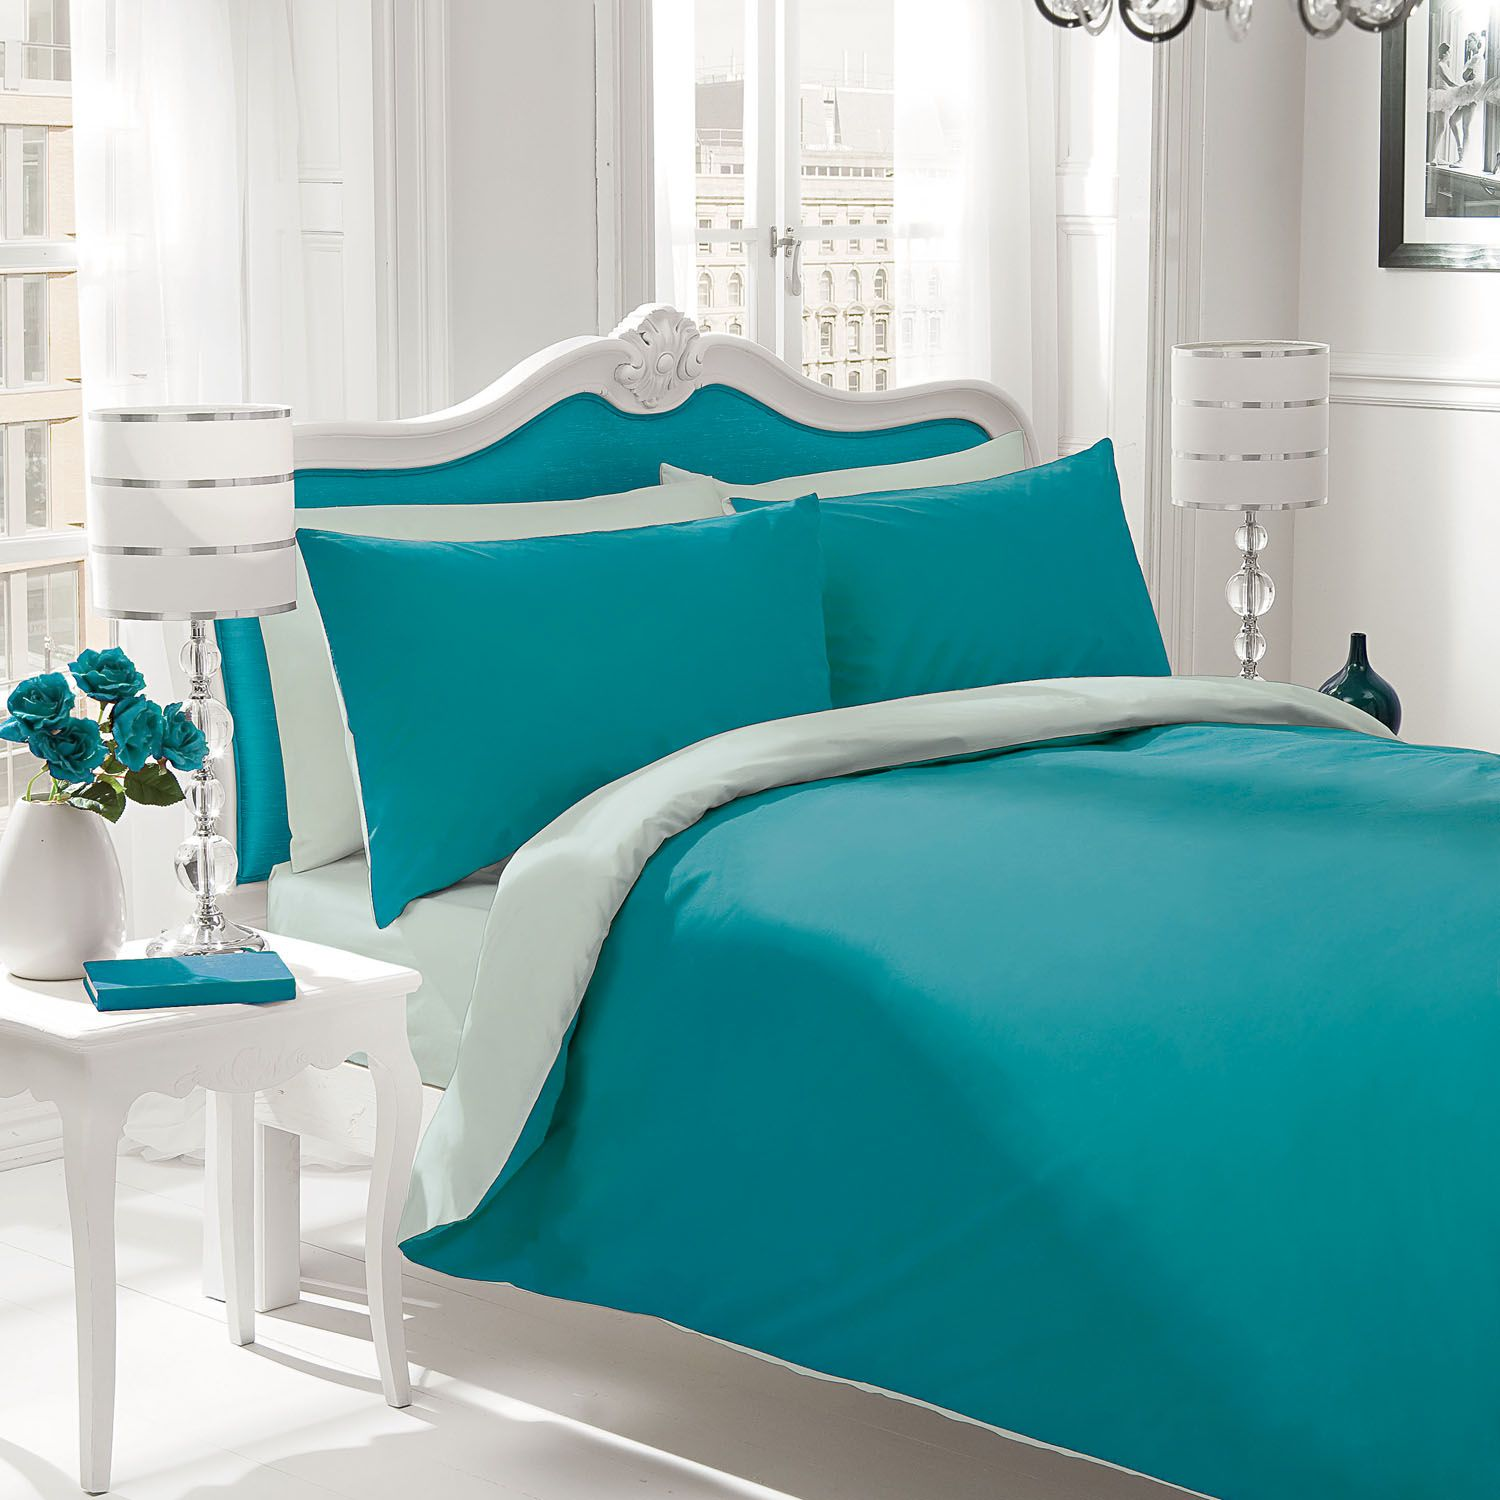 Bedding sets turquoise - Teal Comforters And Bedspreads Home Bedding Sets Gaveno Cavailia Plain Dyed Bedding Set